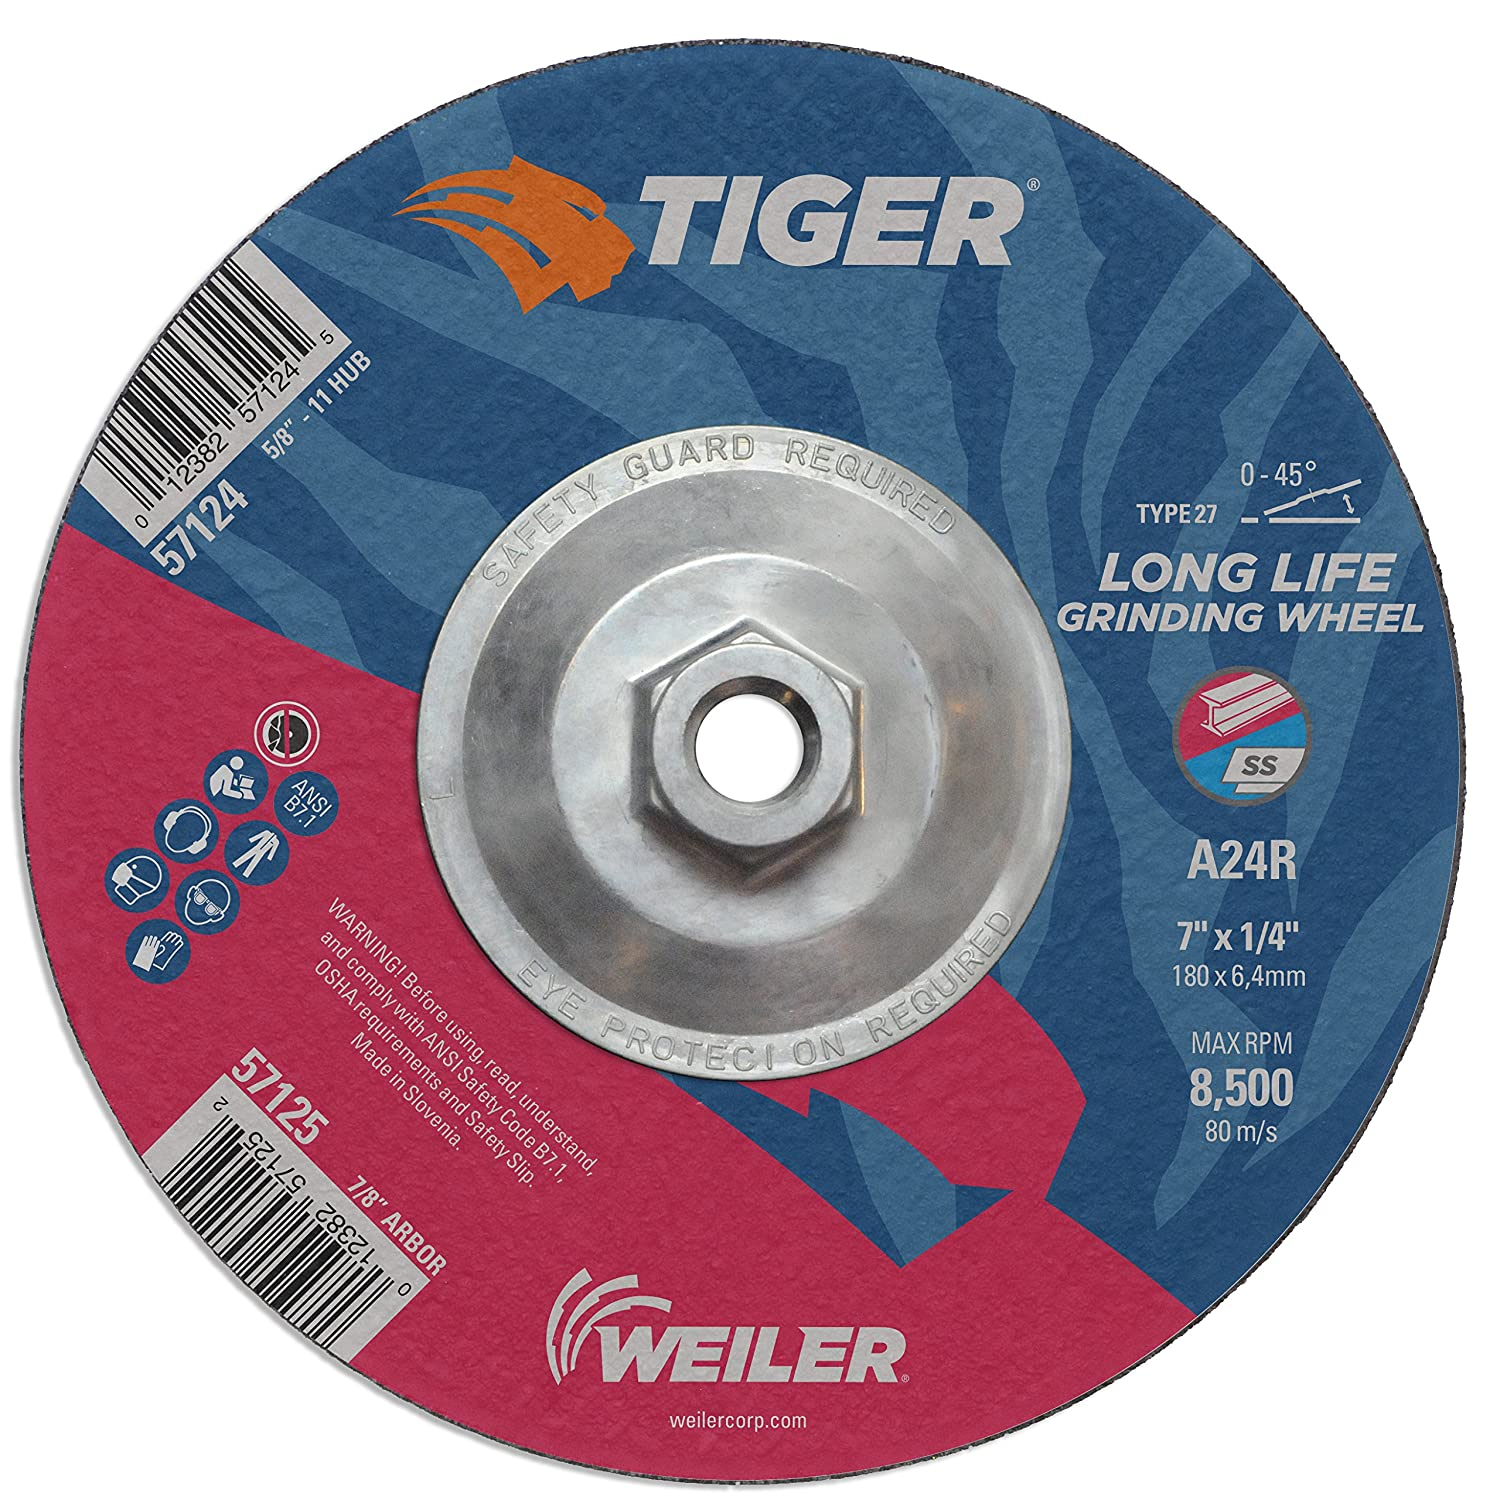 Weiler 57124 7 x 1//4 Tiger Type 27 Grinding Wheel Pack of 10 5//8-11 UNC Nut Pack of 10 5//8-11 UNC Nut A24R